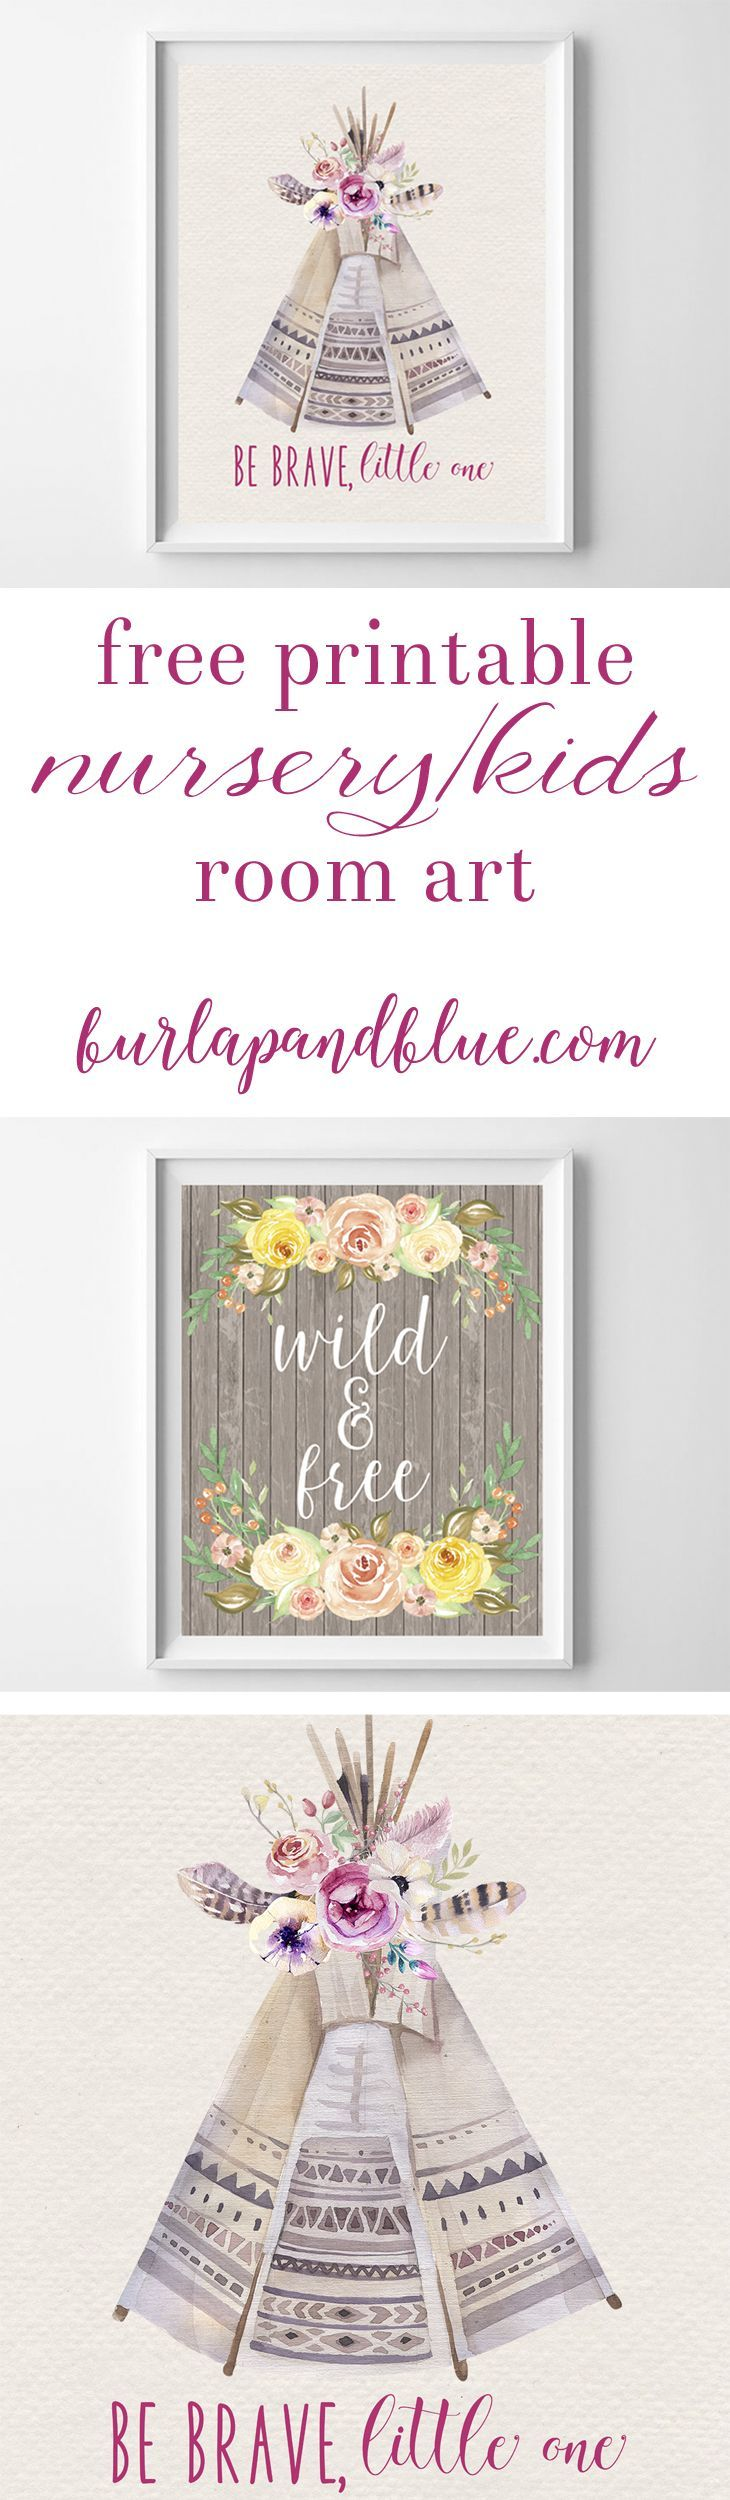 resume Free Printable Resume best 25 free printable resume ideas on pinterest mandala art for nursery kids two printables to download frame and